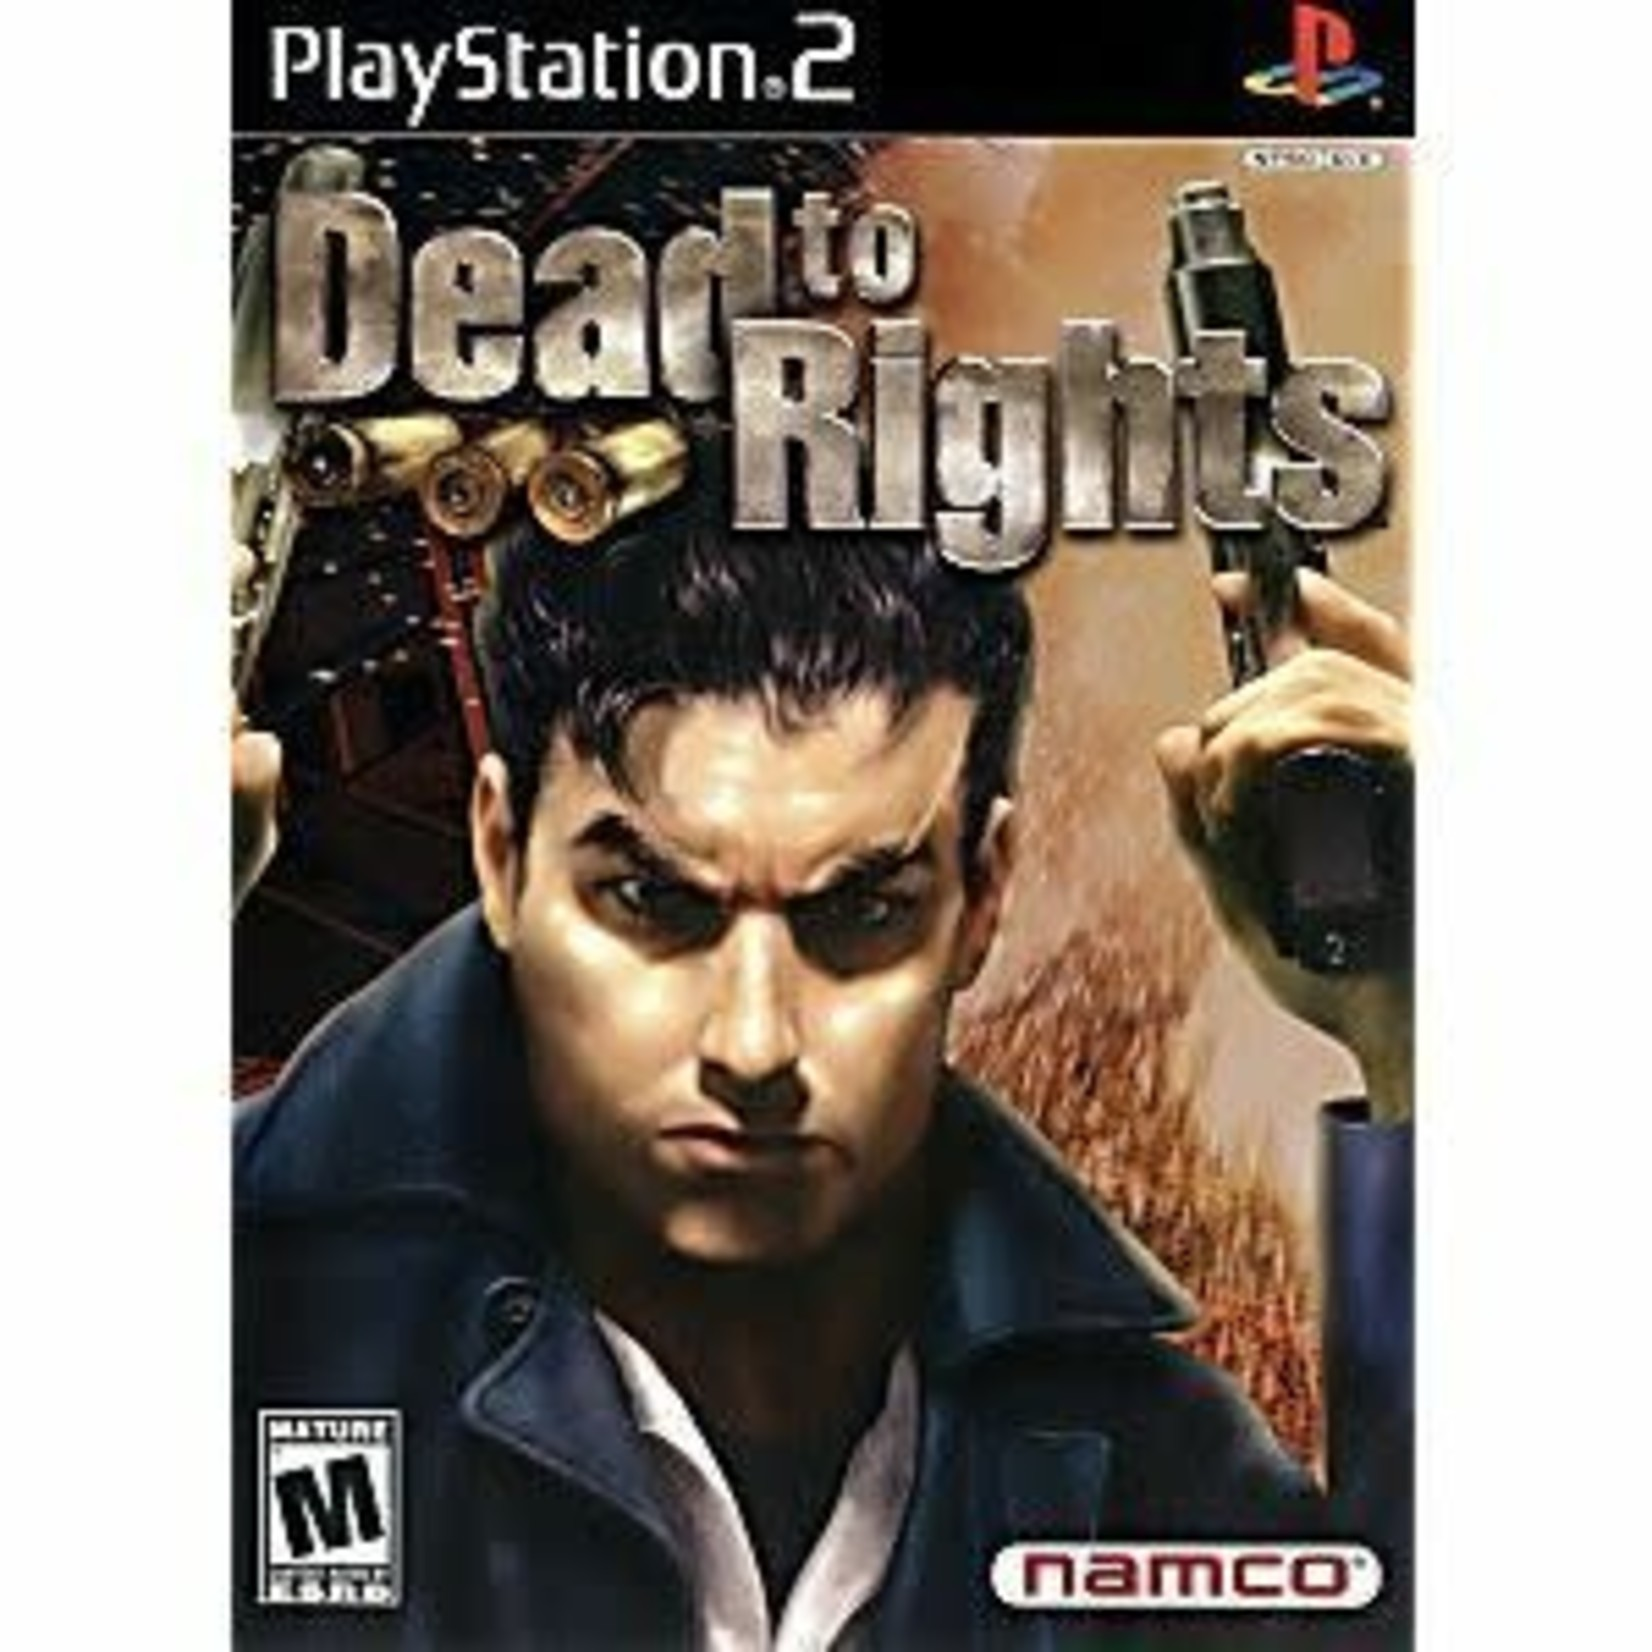 PS2U-DEAD TO RIGHTS